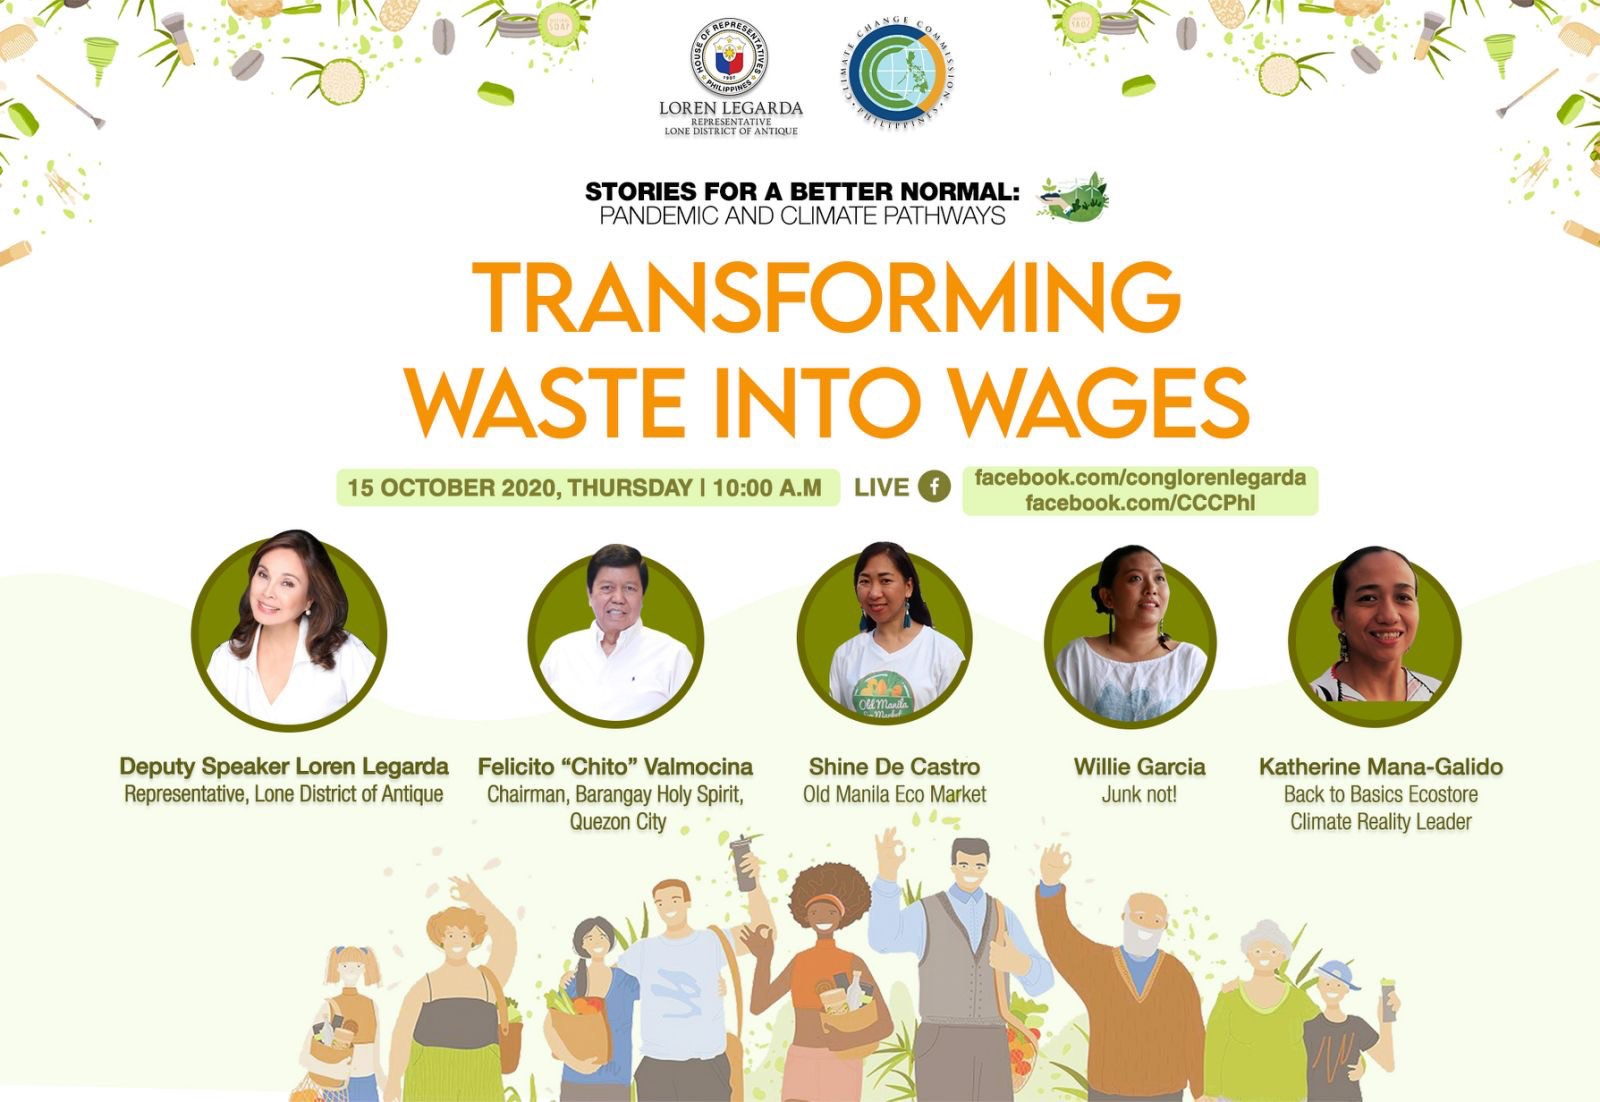 Transforming Waste into Wages